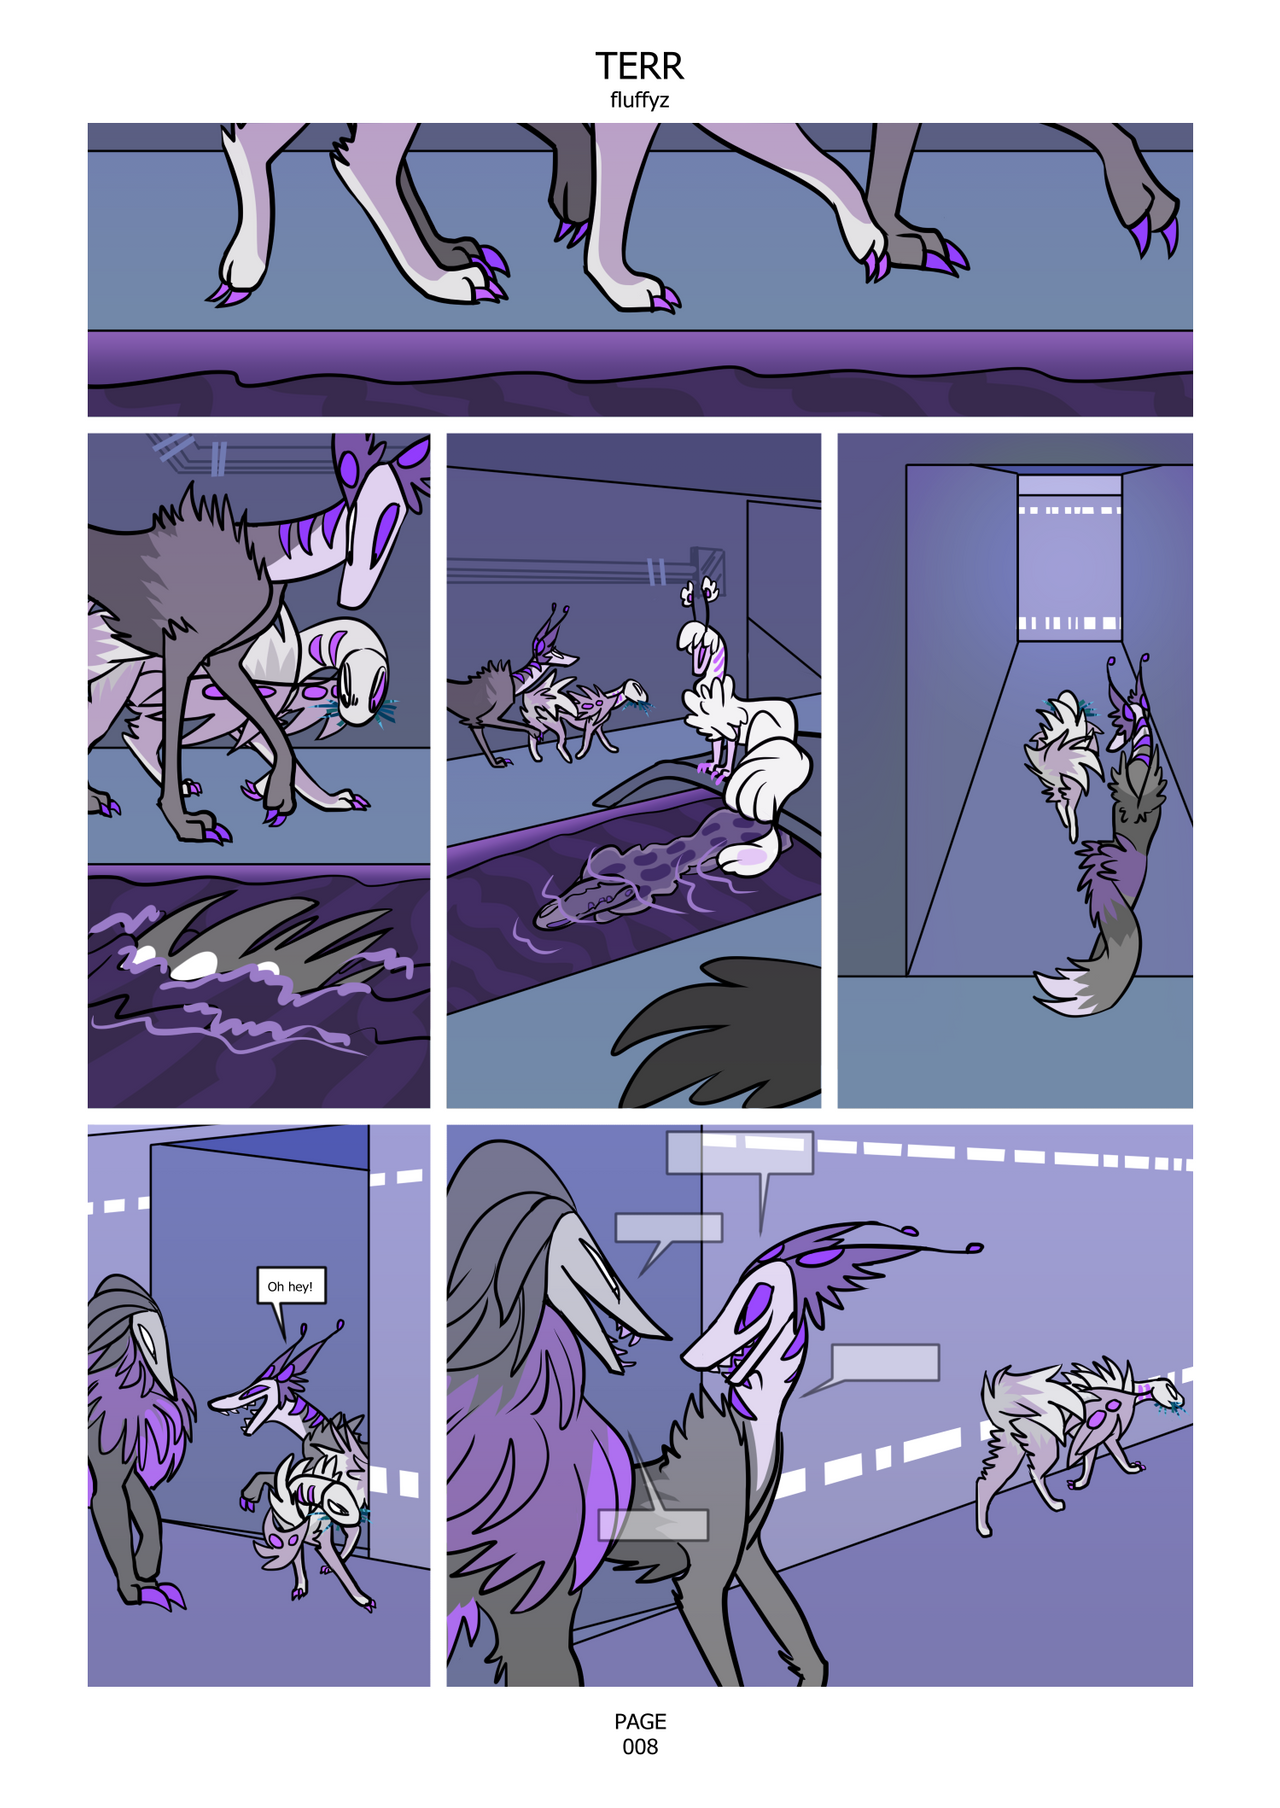 Terr Page 008